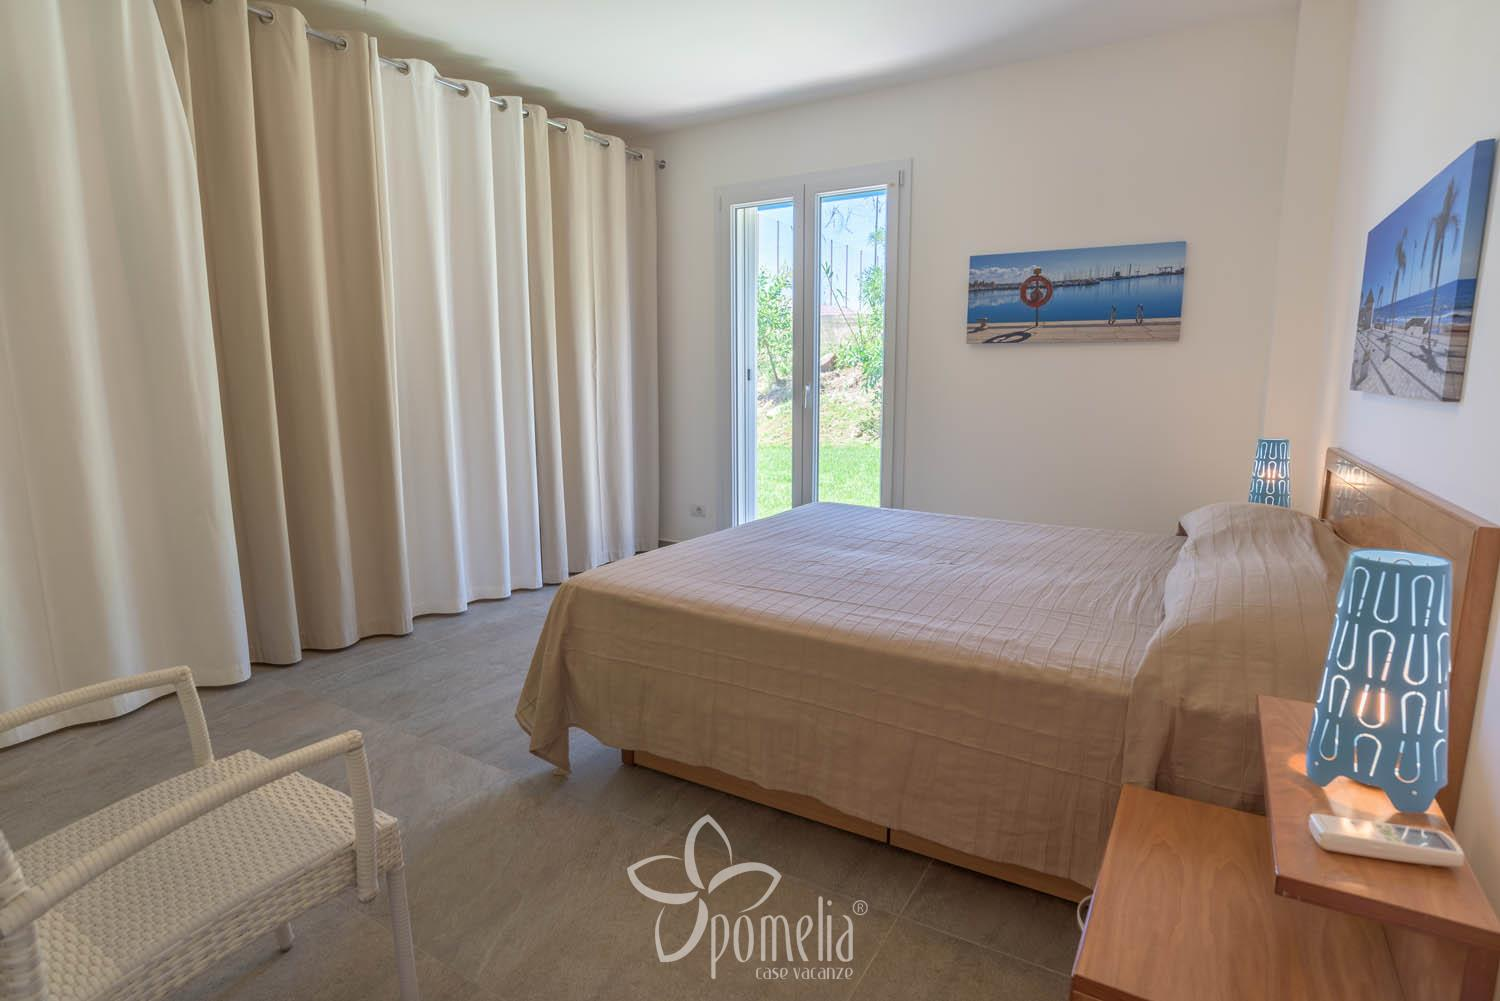 Dafne, villa with pool and garden 300 meters from the beach of Caucana - Double room